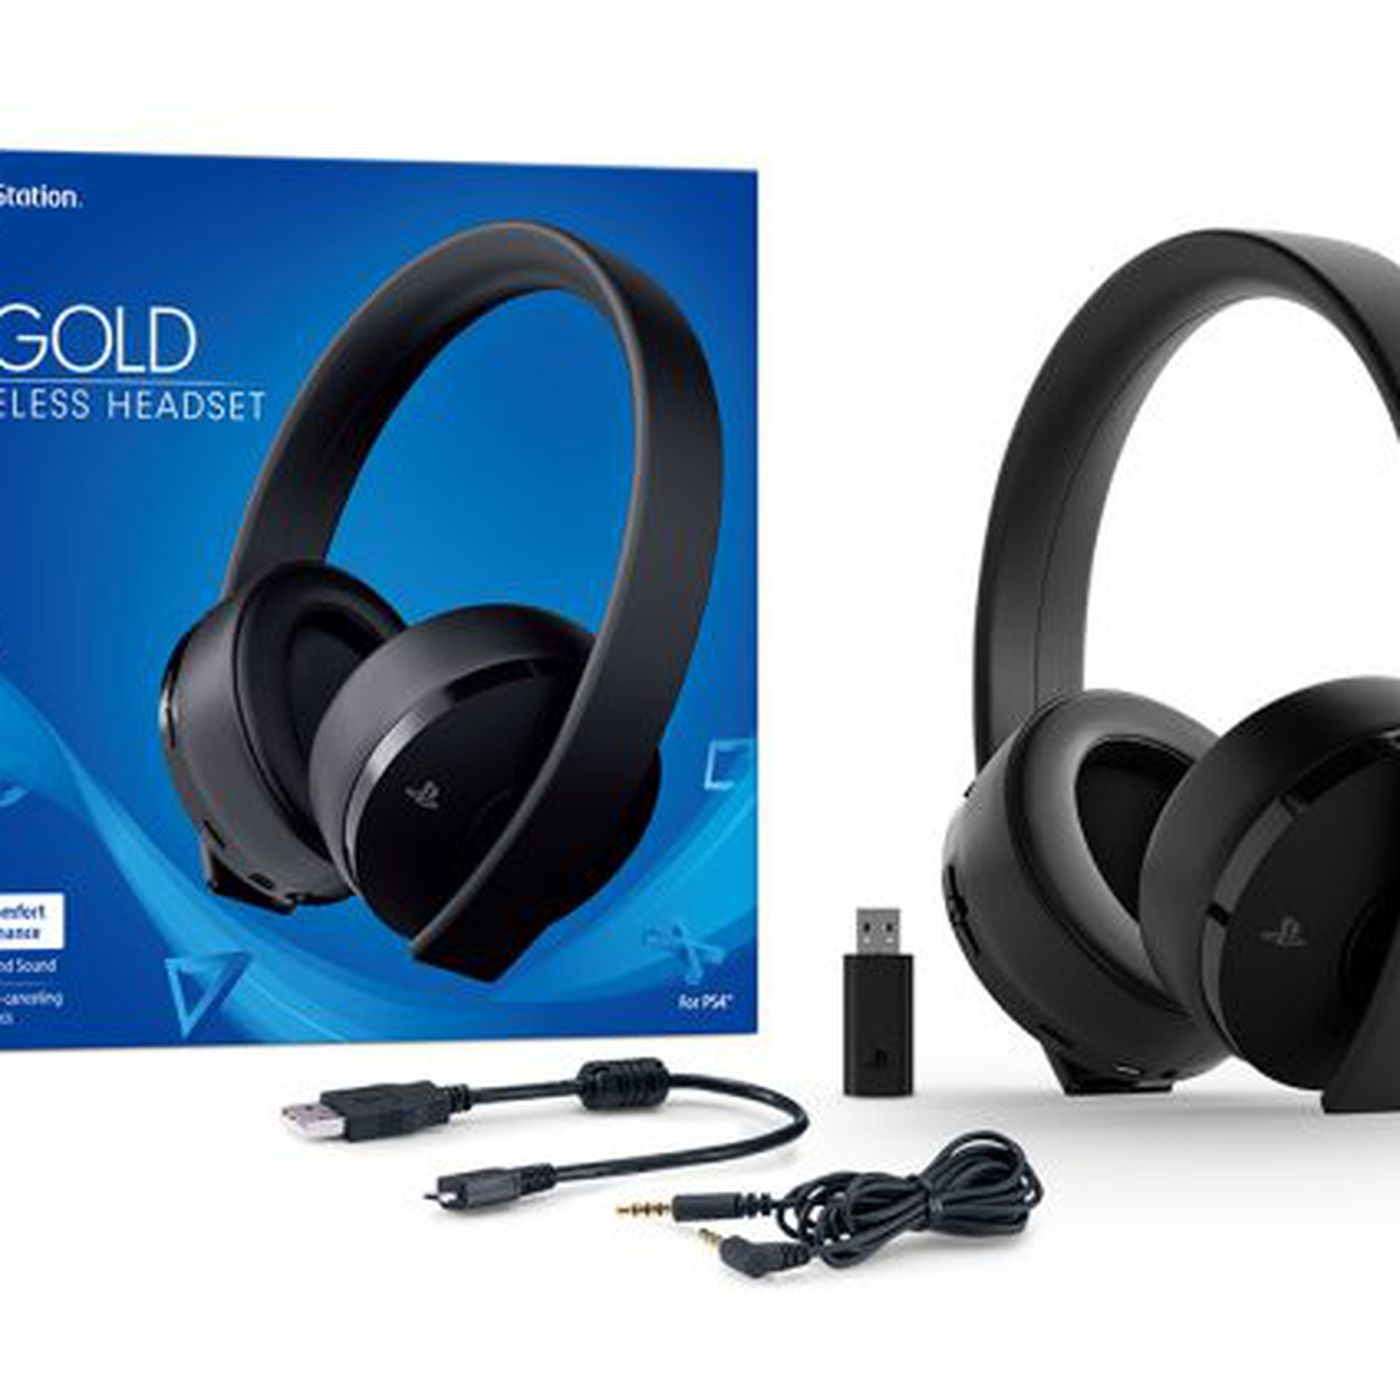 Sony Insists That Its New Gold Wireless Headset Is Indeed A New Product The Verge